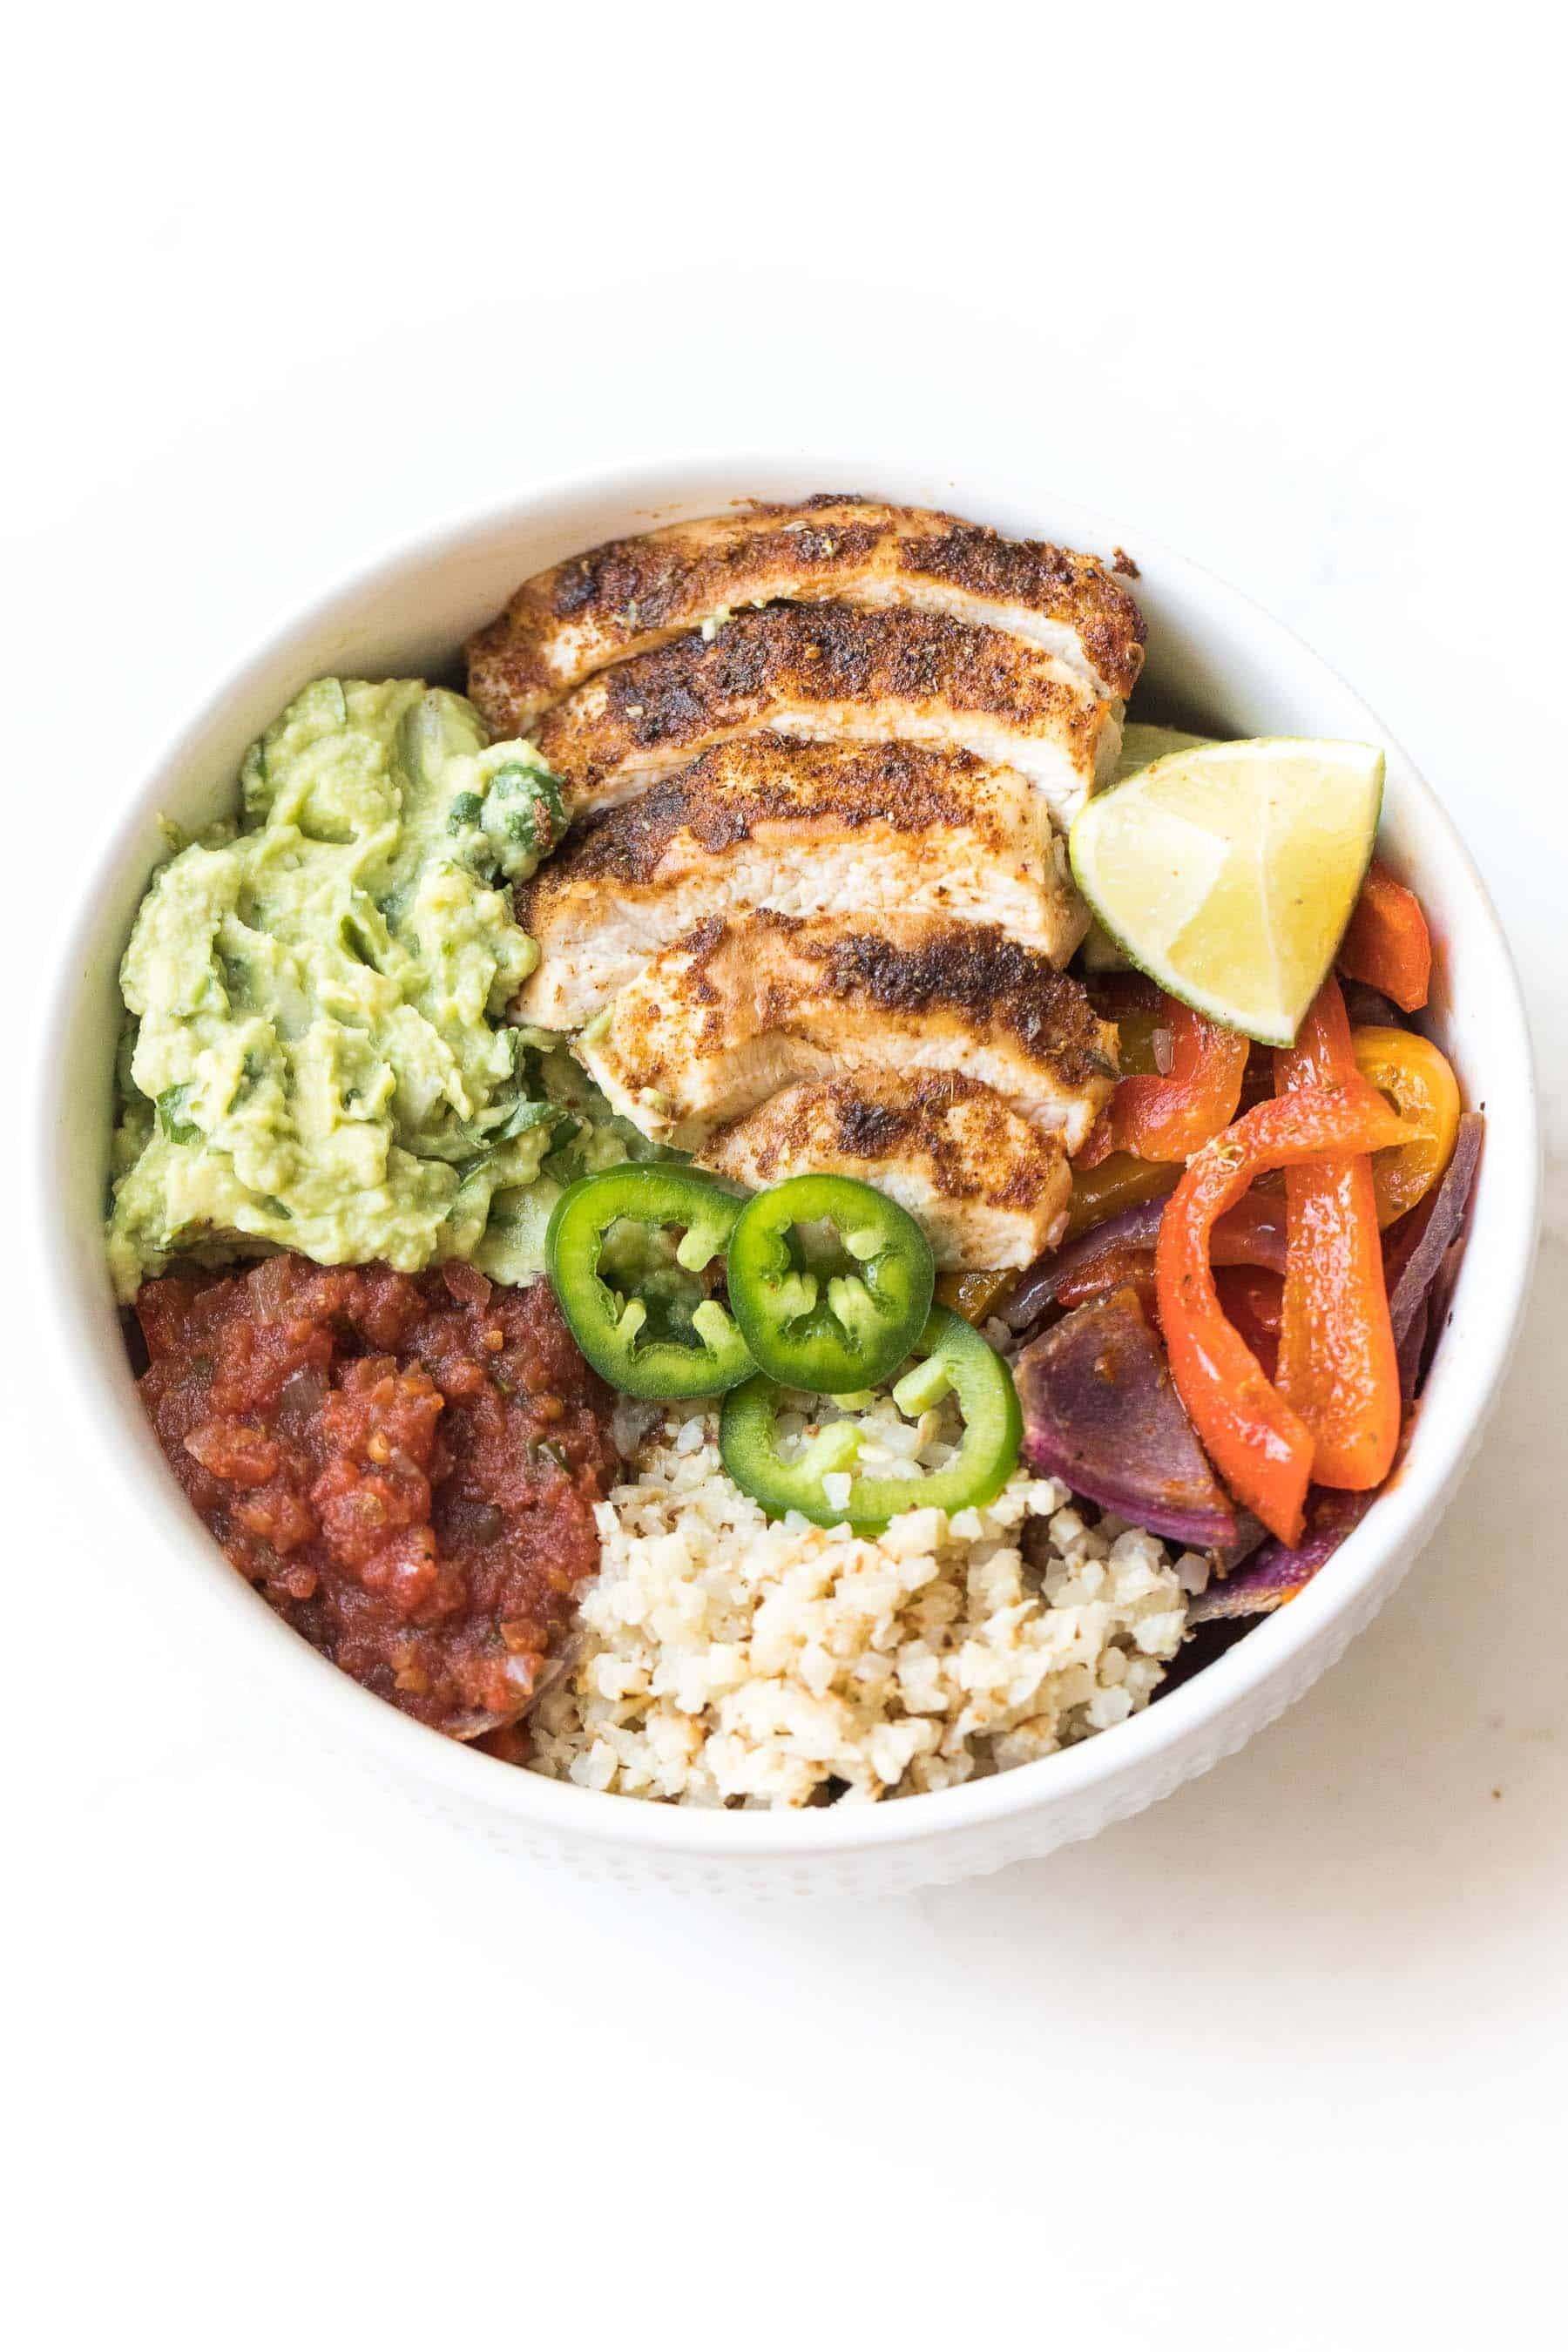 chicken fajita burrito taco bowl